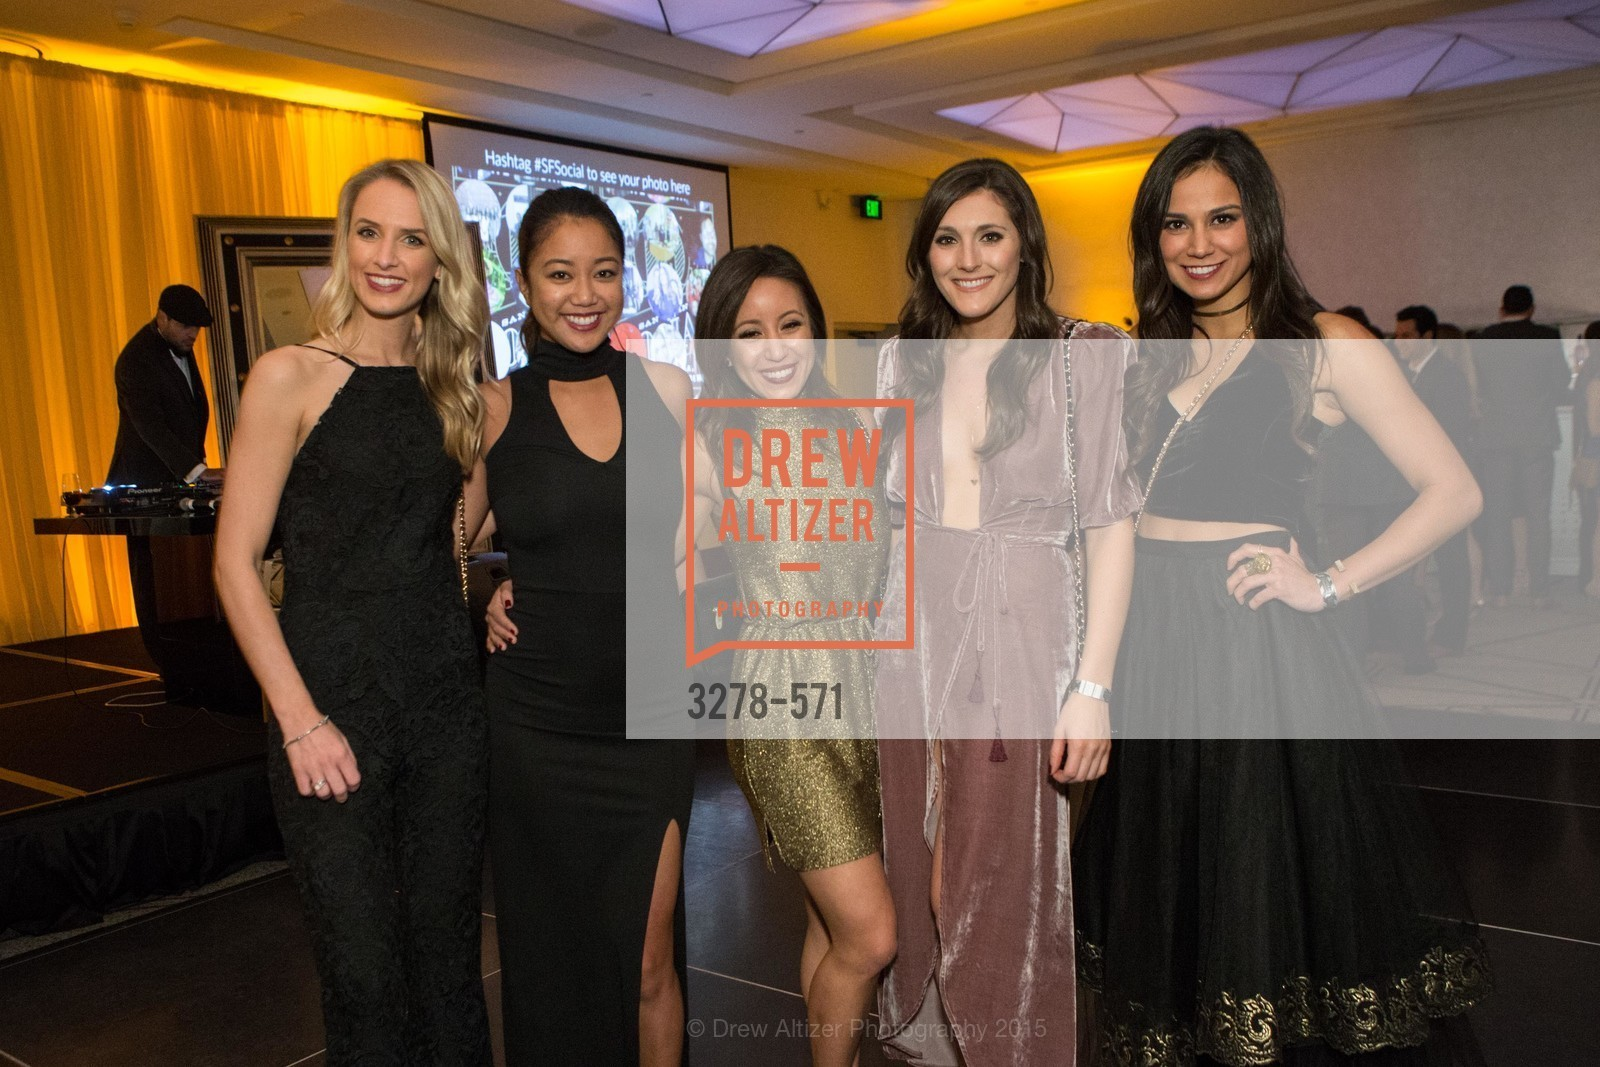 Kristin Falk, Sharina Tiamdon, Katie Hume, Aly Wente, Ari Parite, The 10th Annual San Francisco Social, W Hotel. 181 3rd St, November 21st, 2015,Drew Altizer, Drew Altizer Photography, full-service agency, private events, San Francisco photographer, photographer california